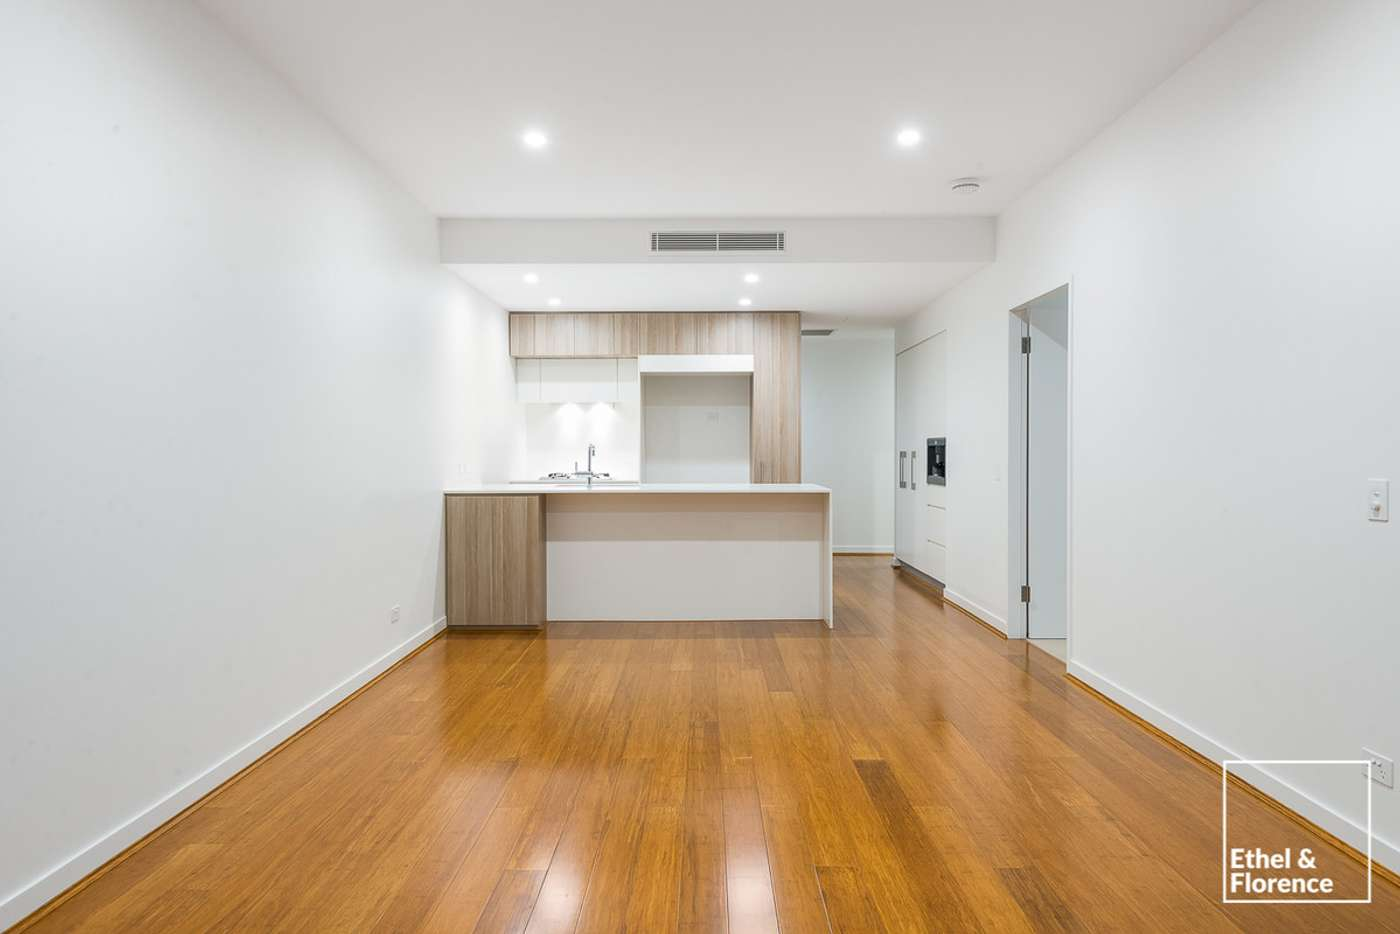 Fifth view of Homely apartment listing, 5401/331 MacArthur Avenue, Hamilton QLD 4007